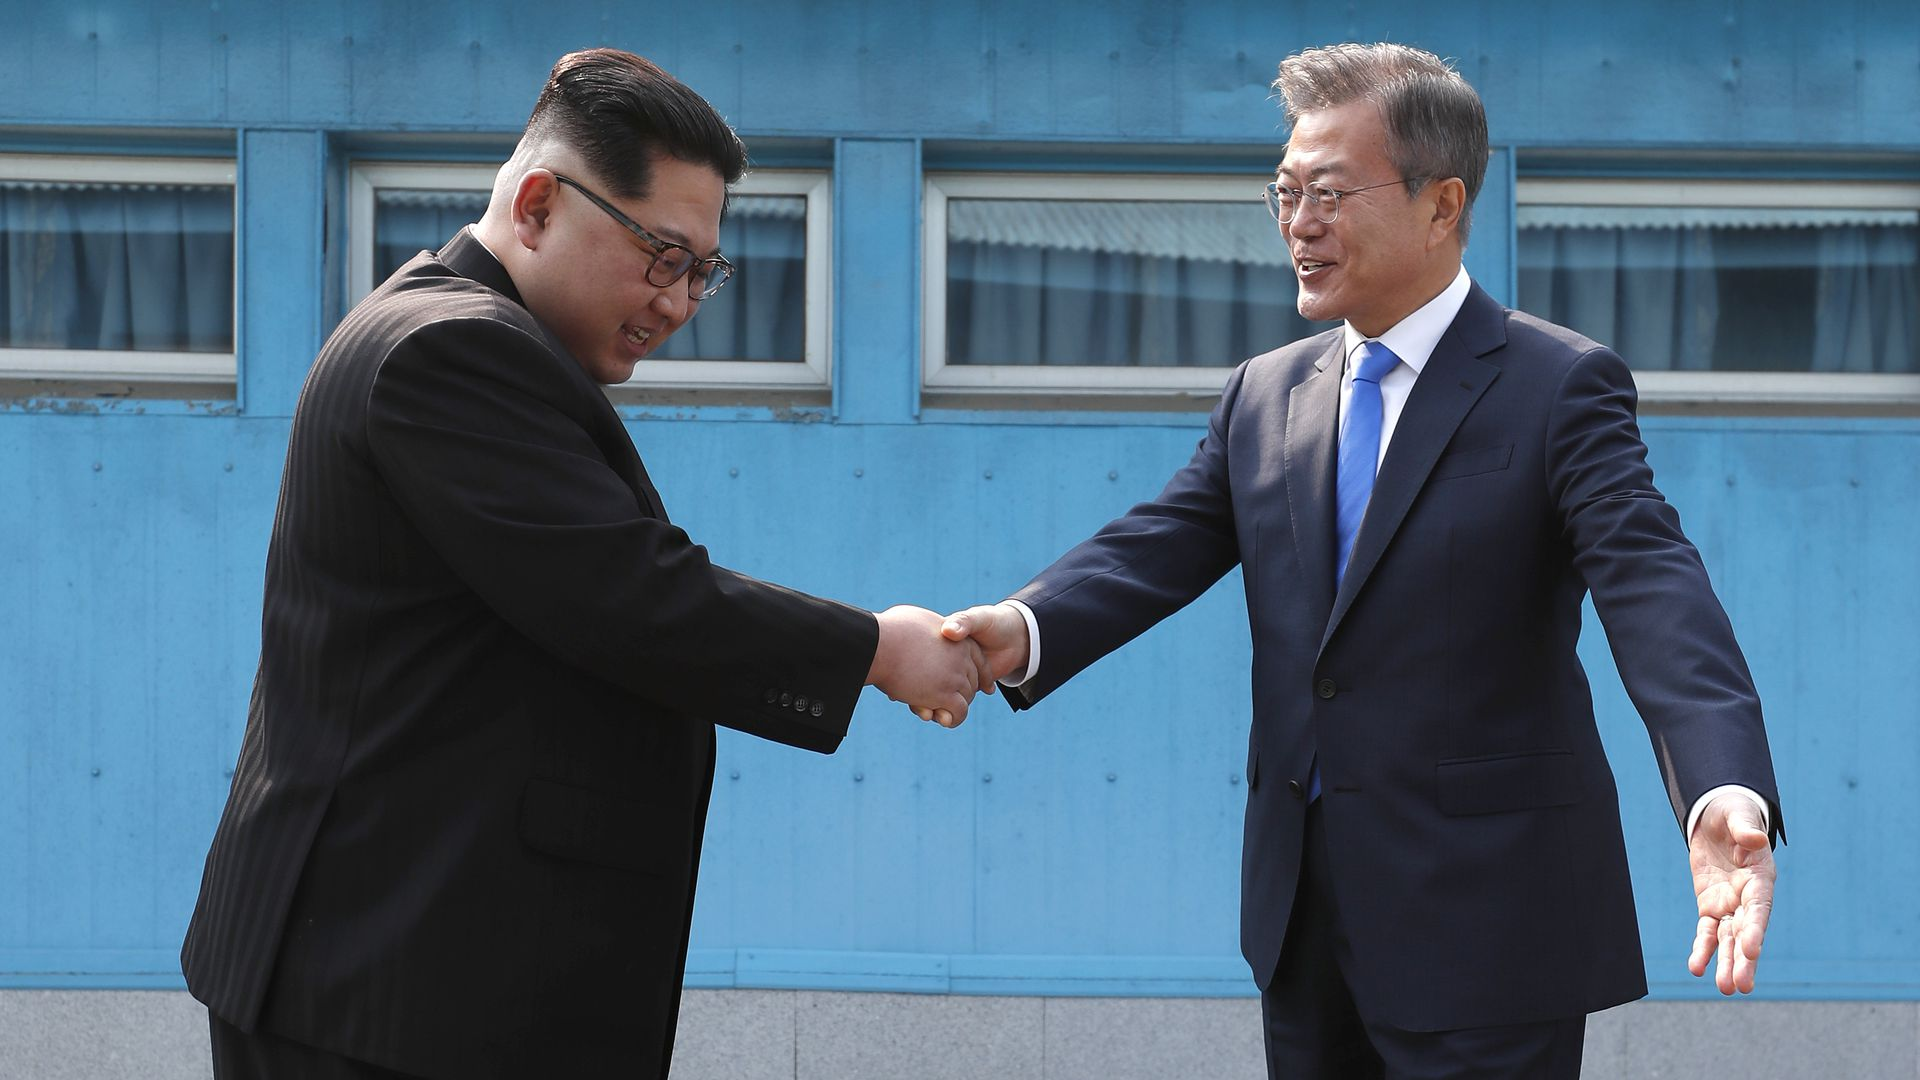 The leaders of North and South Korea